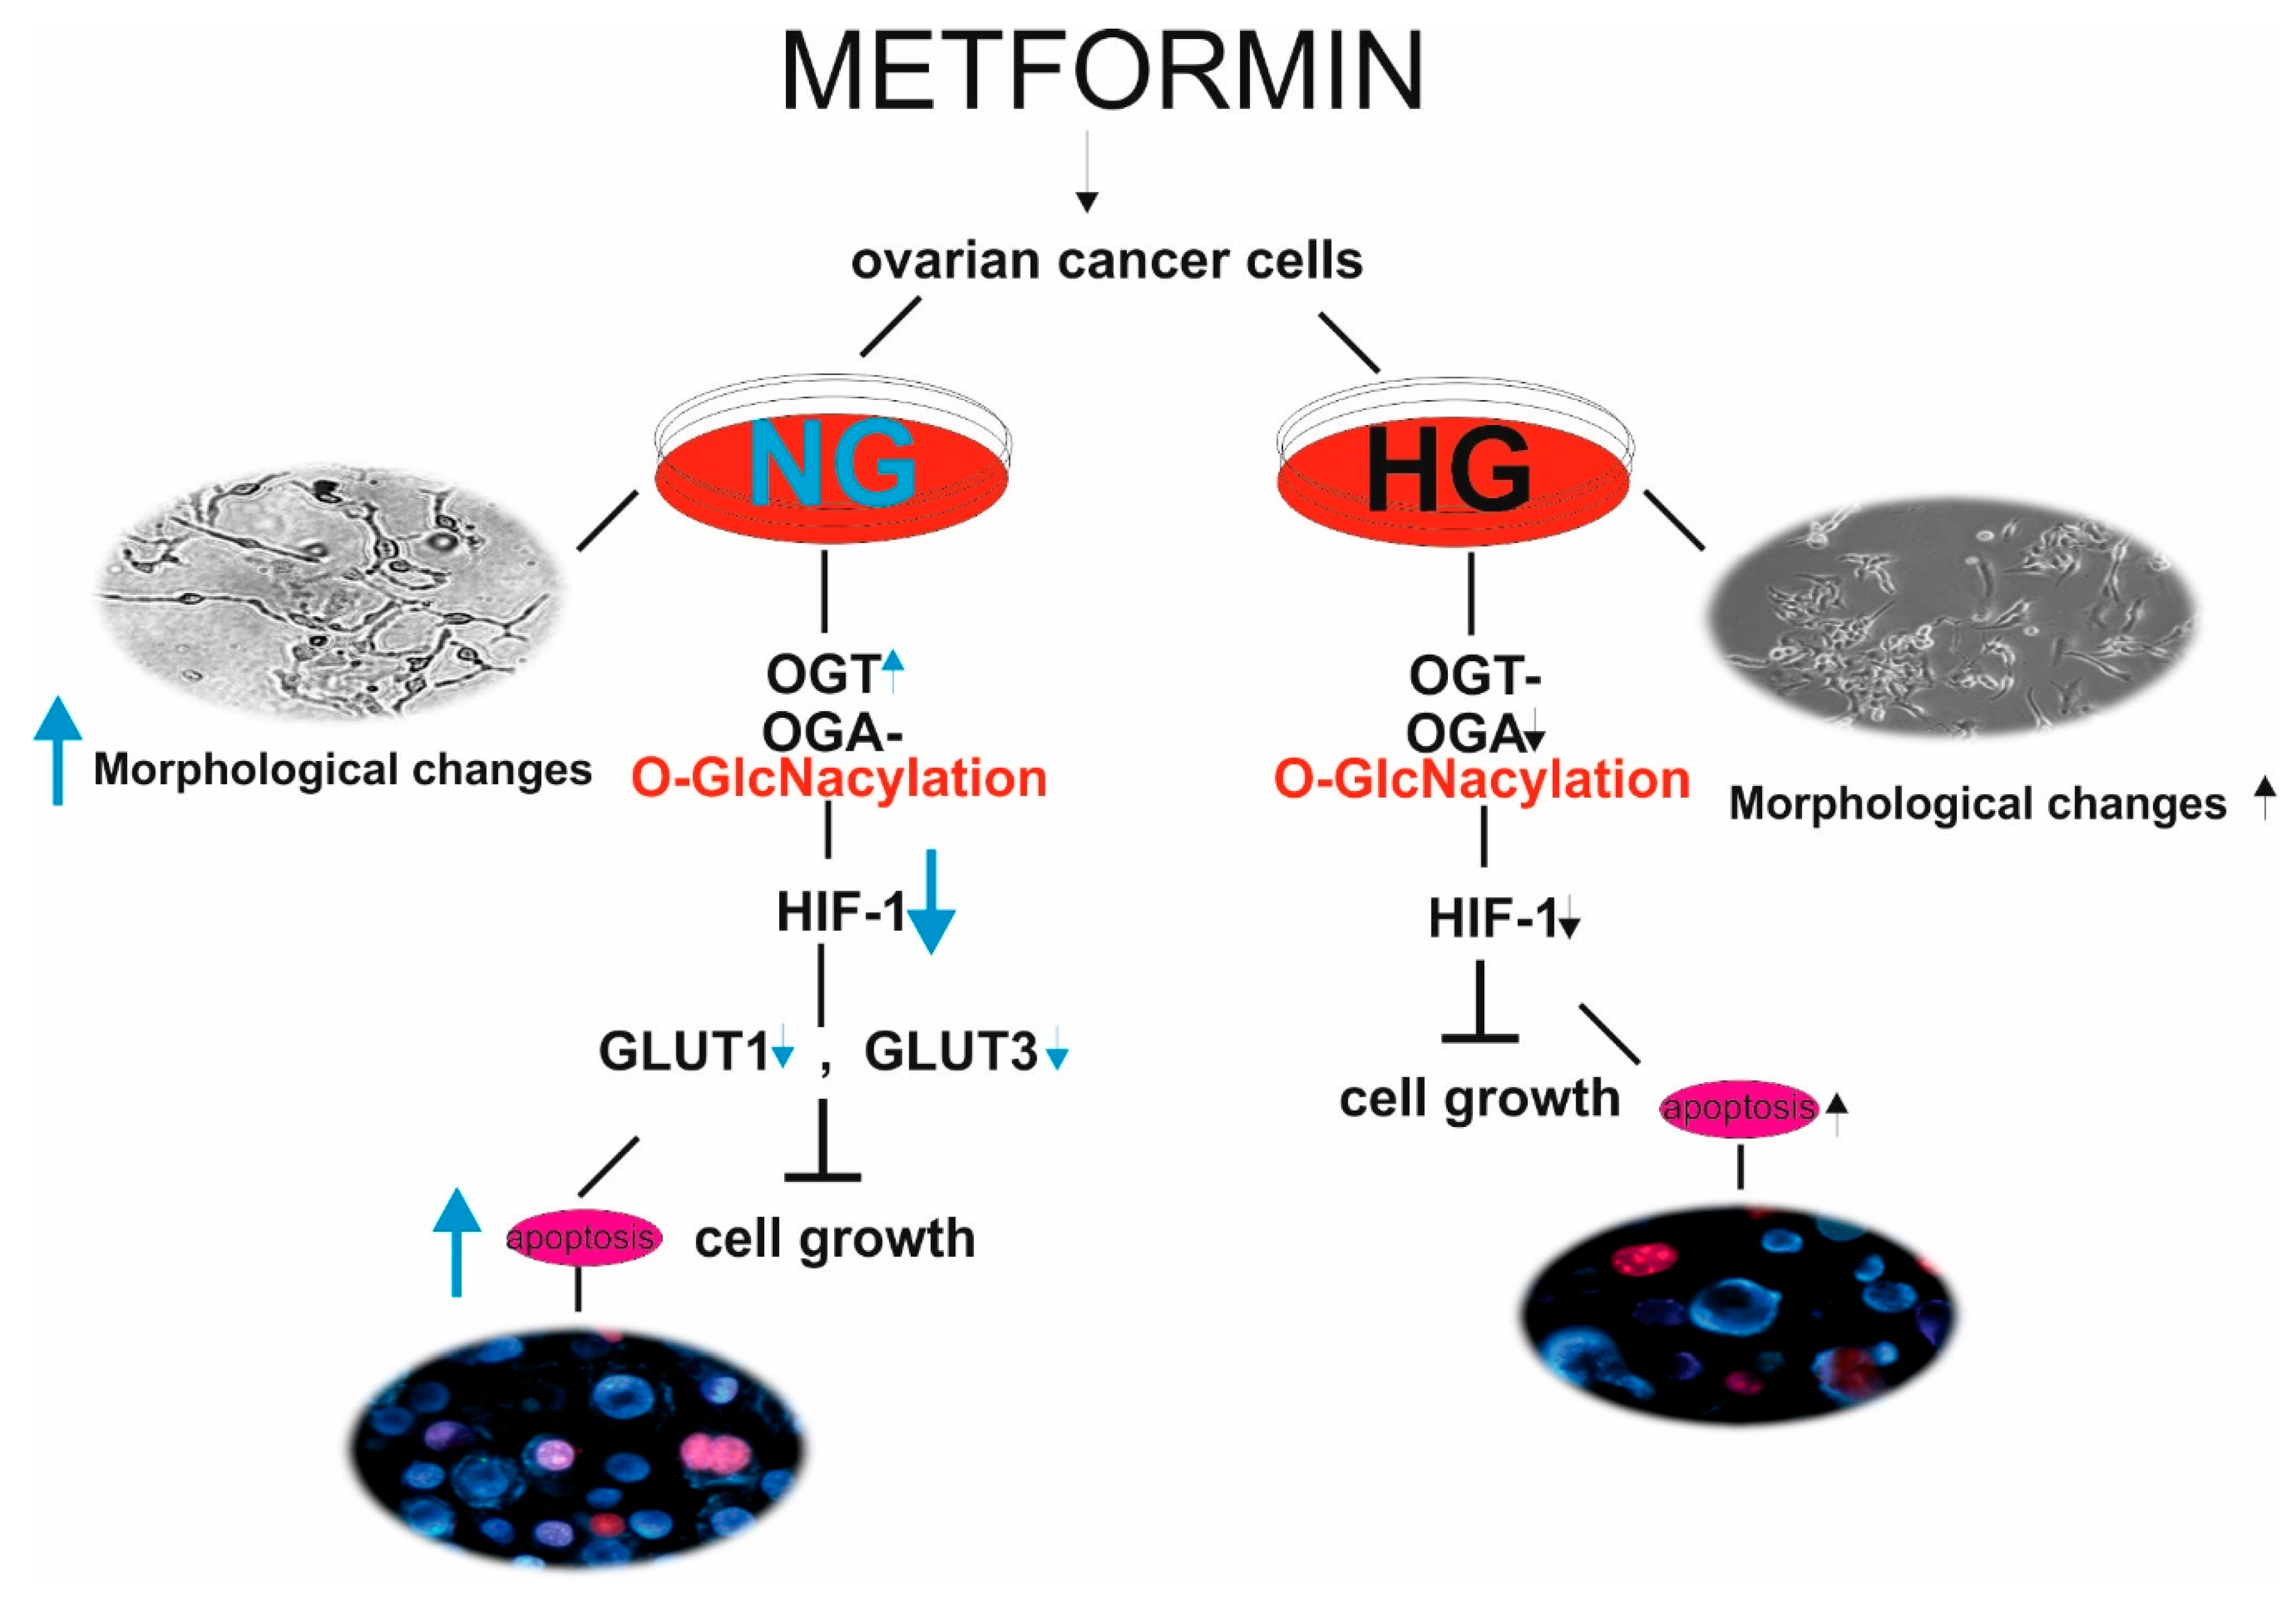 Ijms Free Full Text Hyperglycemia Associated Dysregulation Of O Glcnacylation And Hif1a Reduces Anticancer Action Of Metformin In Ovarian Cancer Cells Skov 3